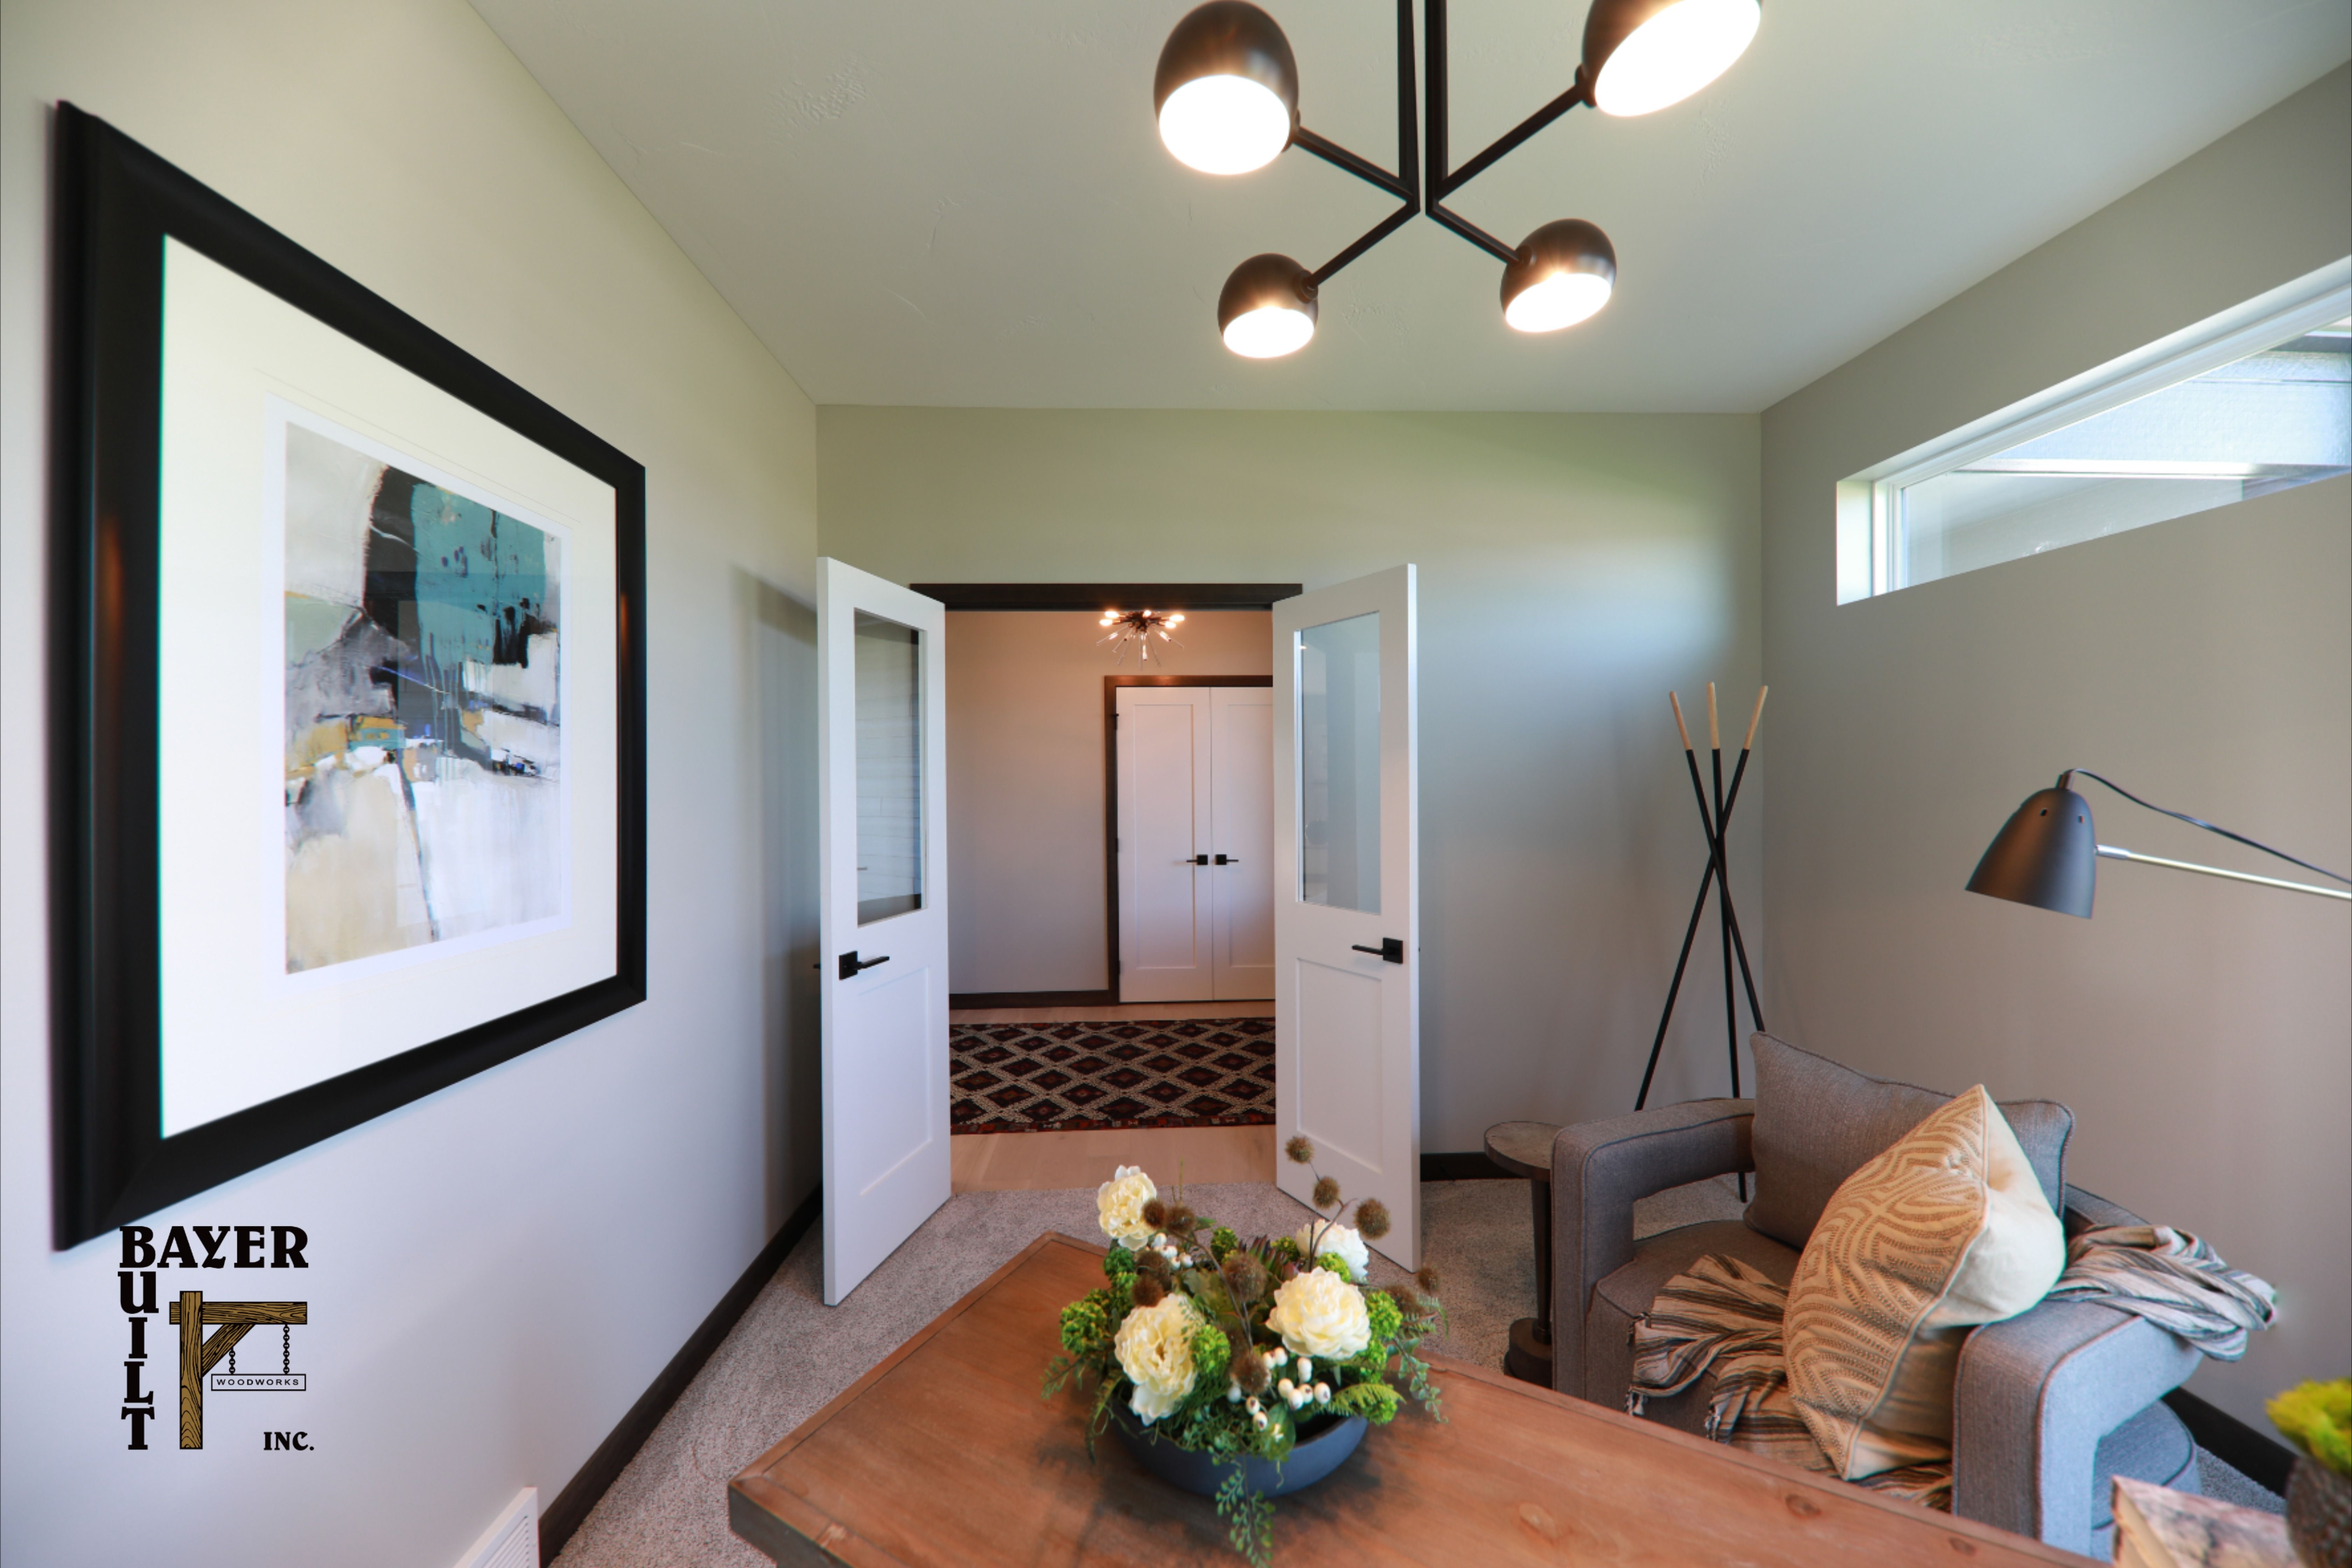 Home Offices Can Be Productive When In 2020 French Doors Home Doors Interior